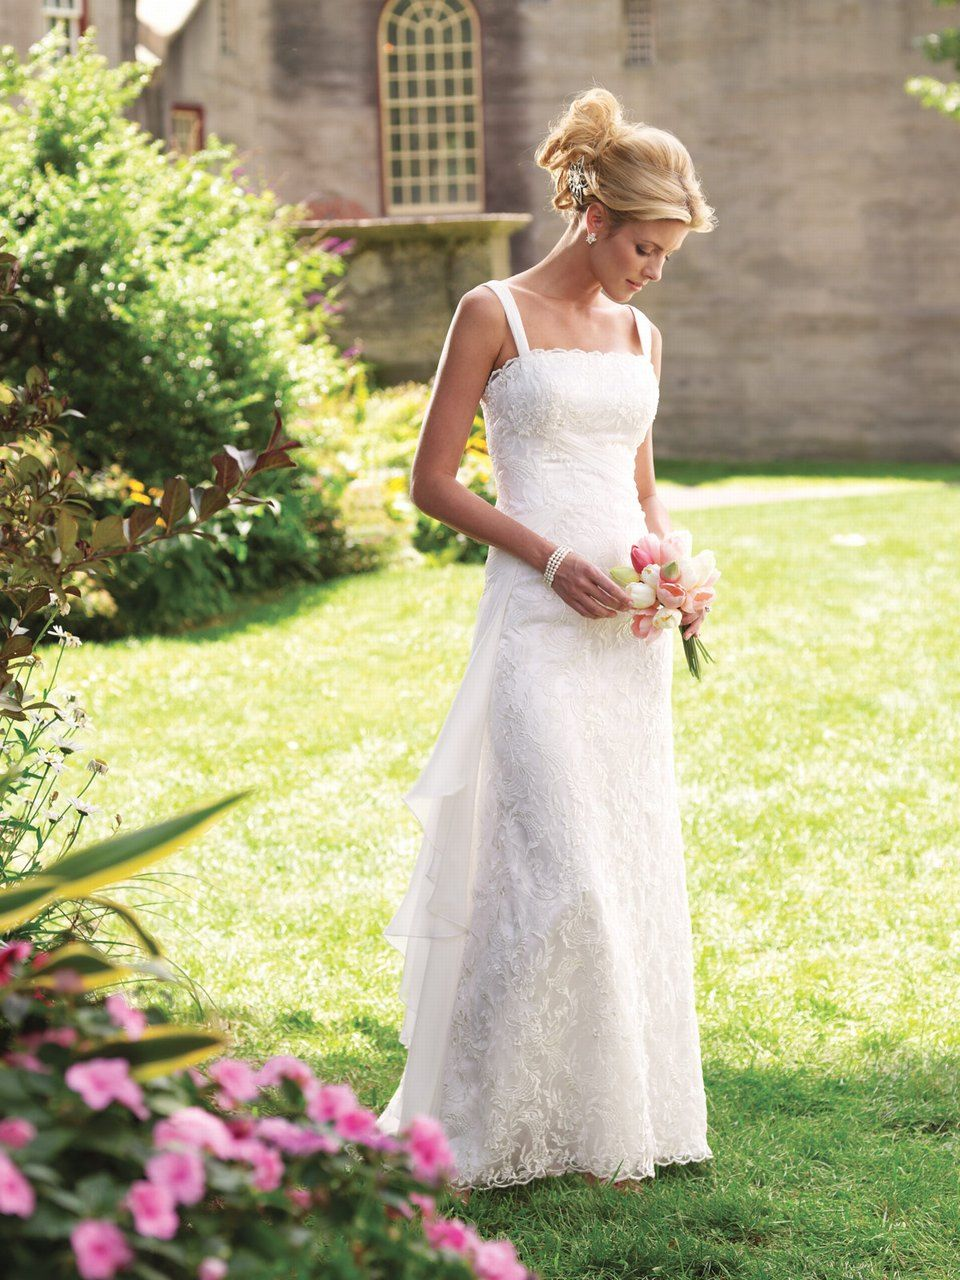 Sheathcolumn spaghetti straps floorlength lace chiffon wedding